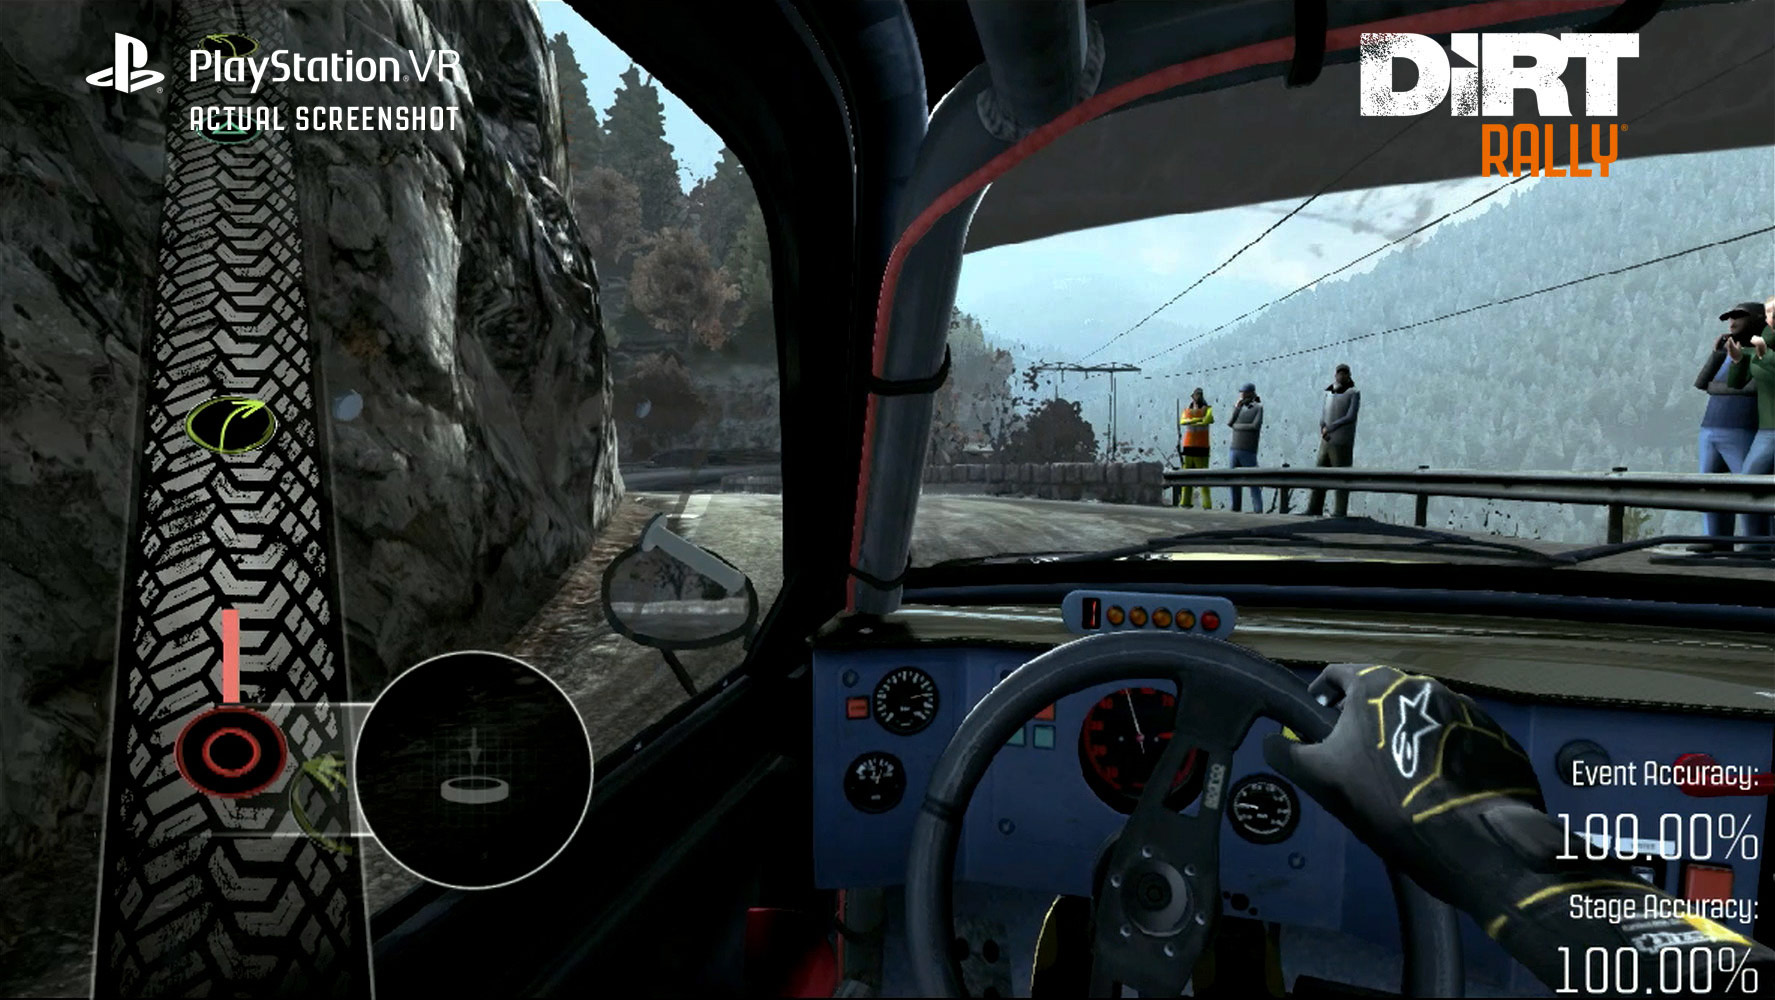 DiRT Rally - Ab sofort auch mit PlayStation VR